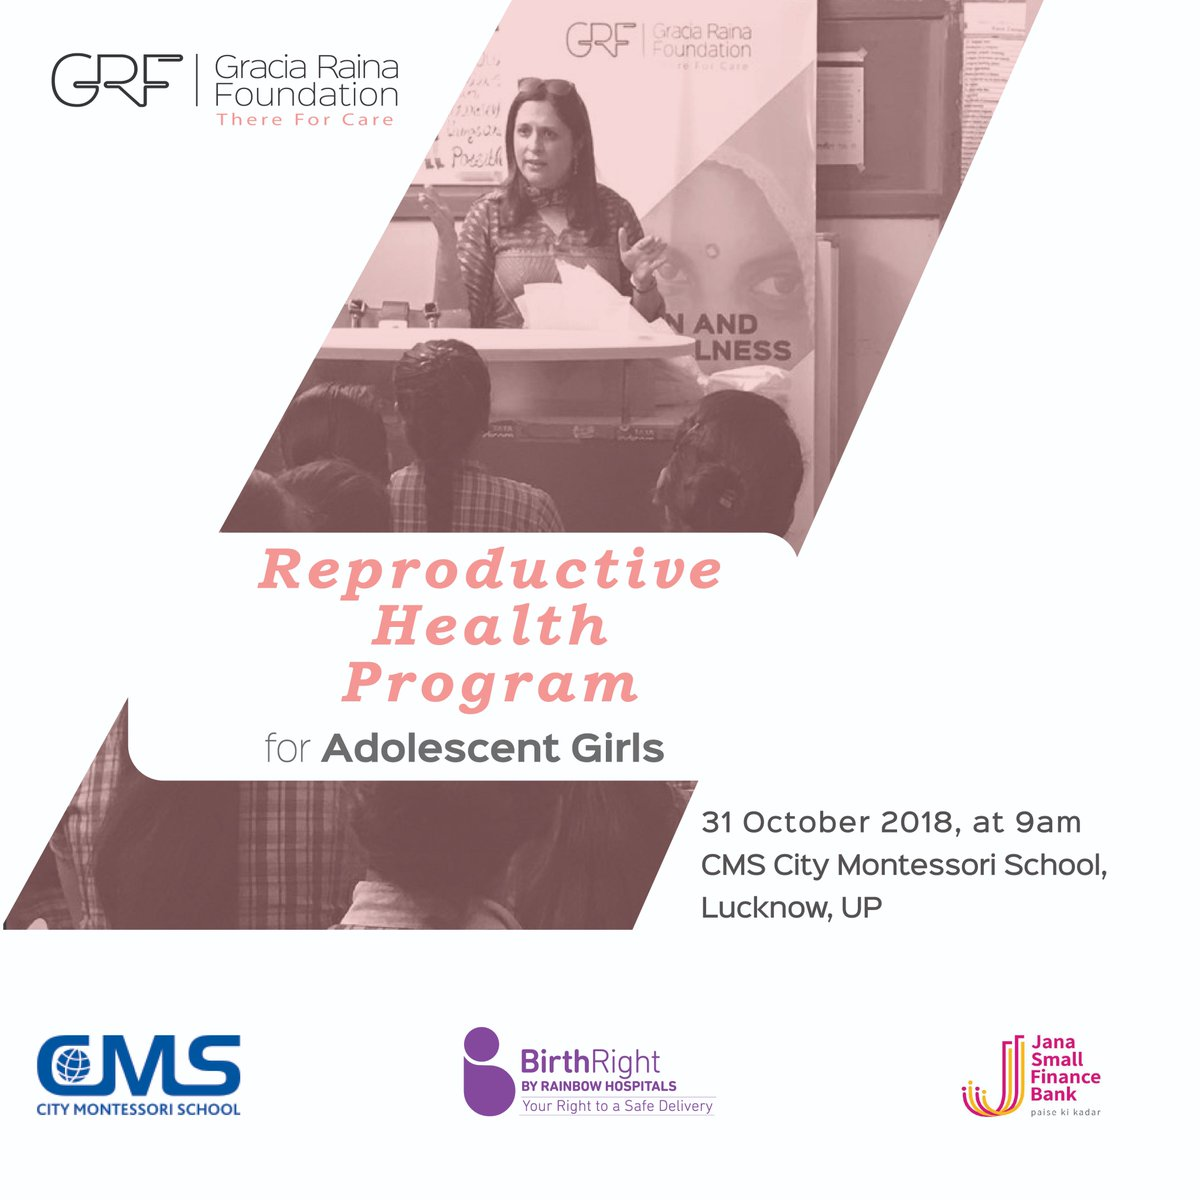 #GRF is conducting its another workshop from #ReproductiveHealthProgram for 400 Adolescence girls in #Lucknow. This program will help them make an informed decision about their health & well-being. #reproductivehealth #adolescent